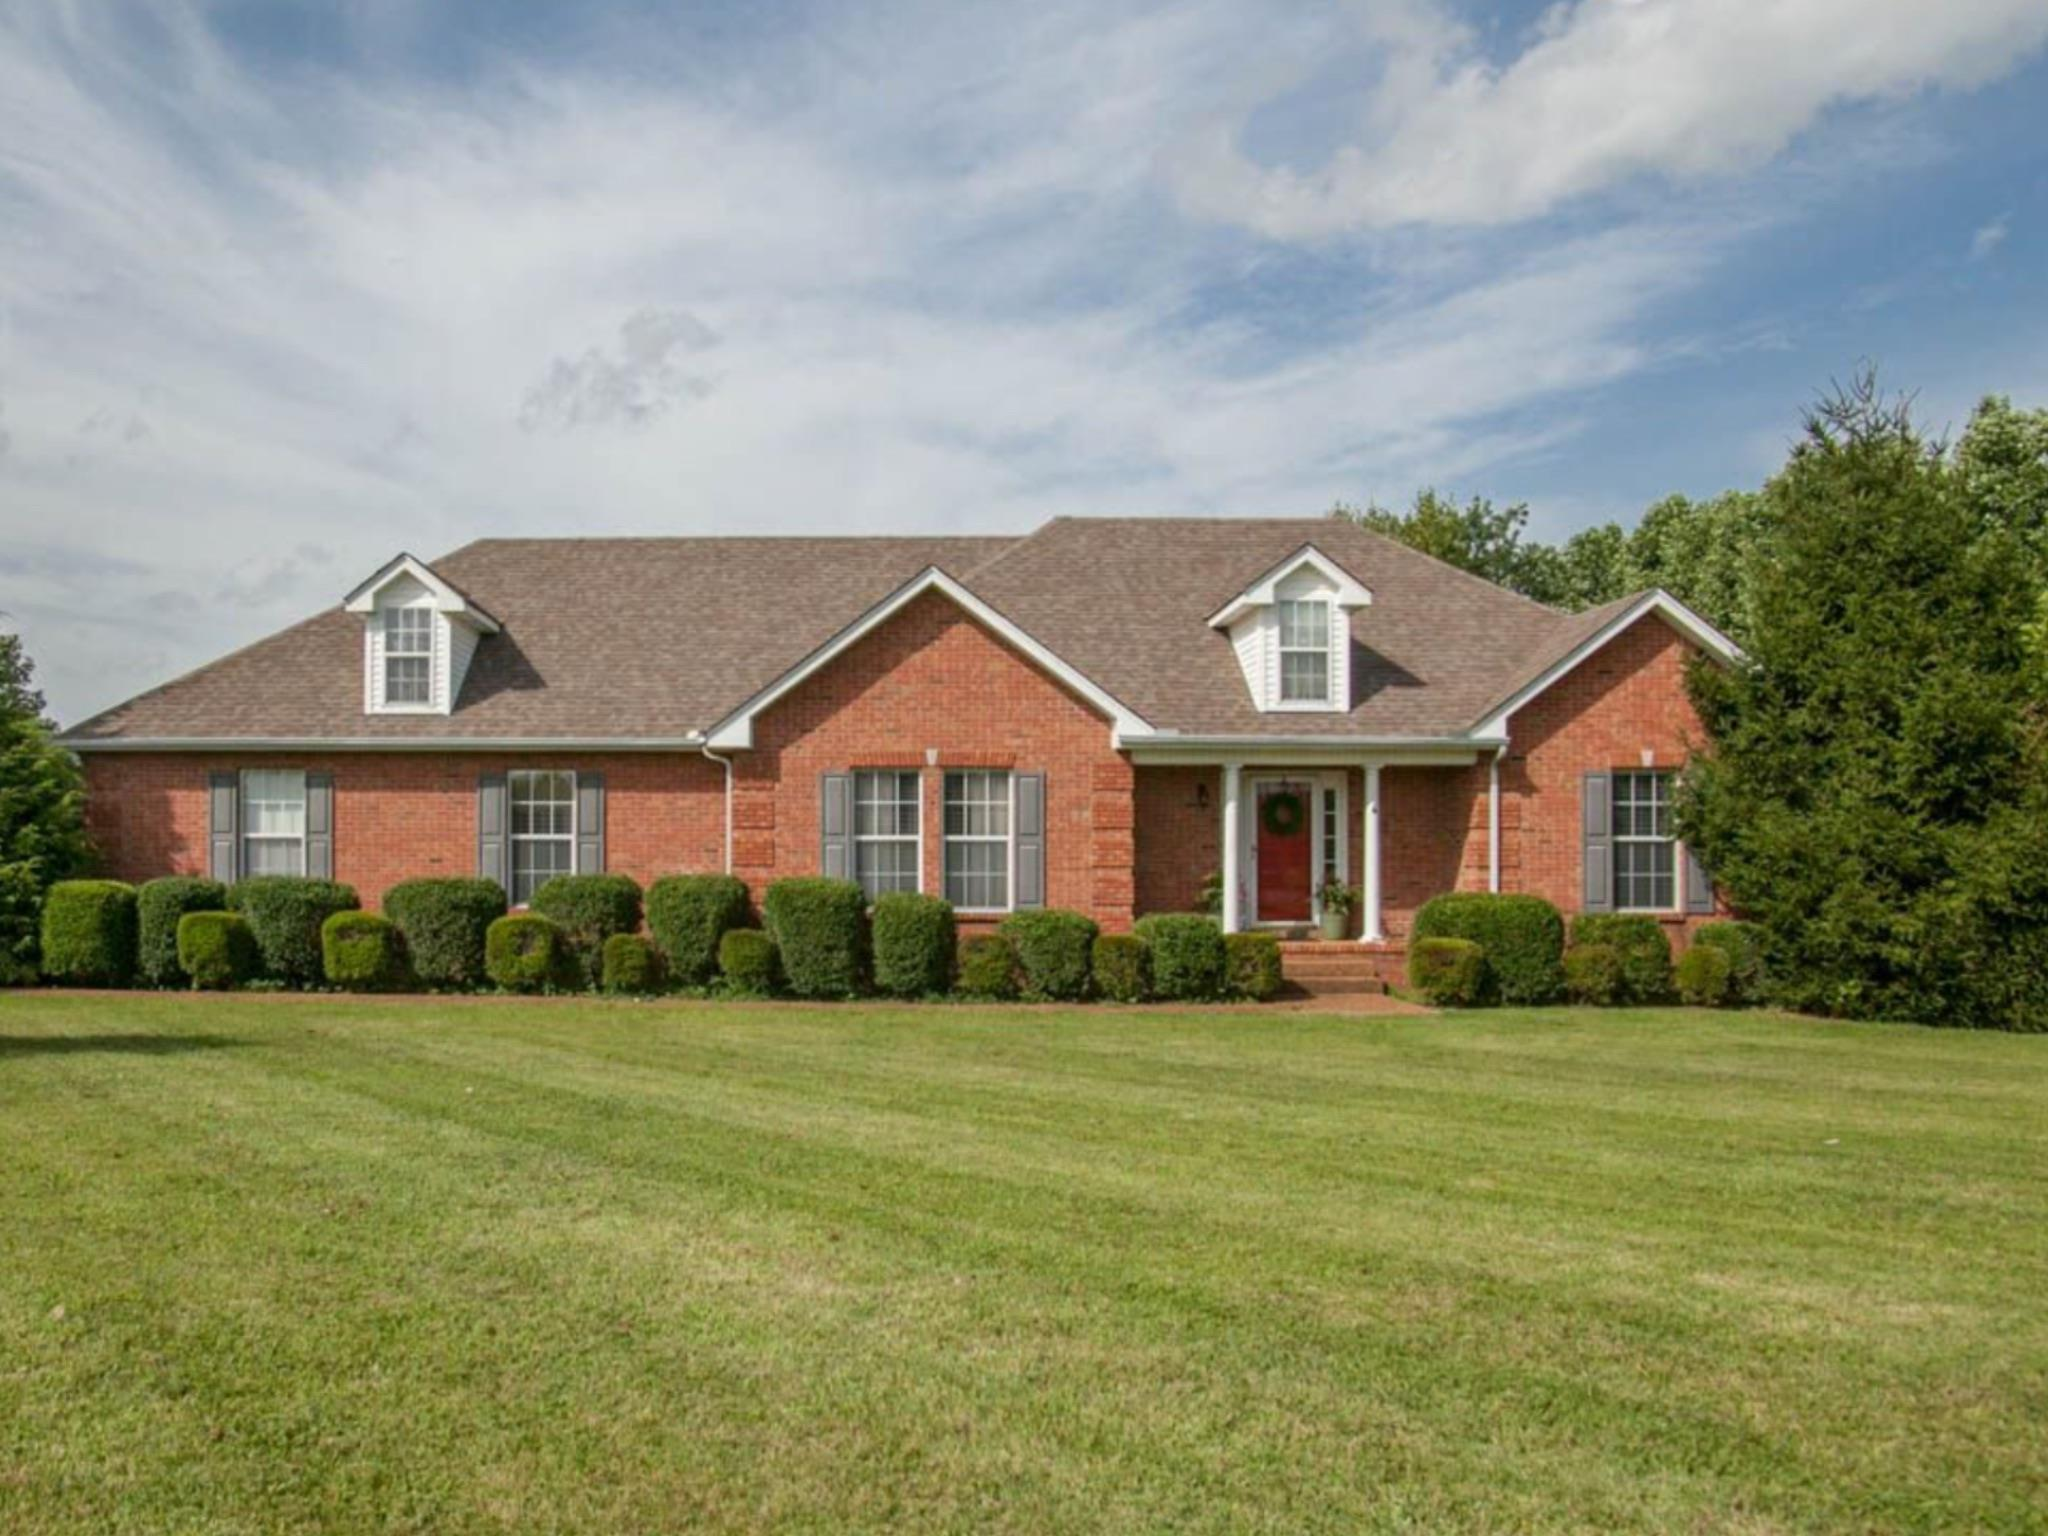 8972 Cedar Grove Rd, Cross Plains, TN 37049